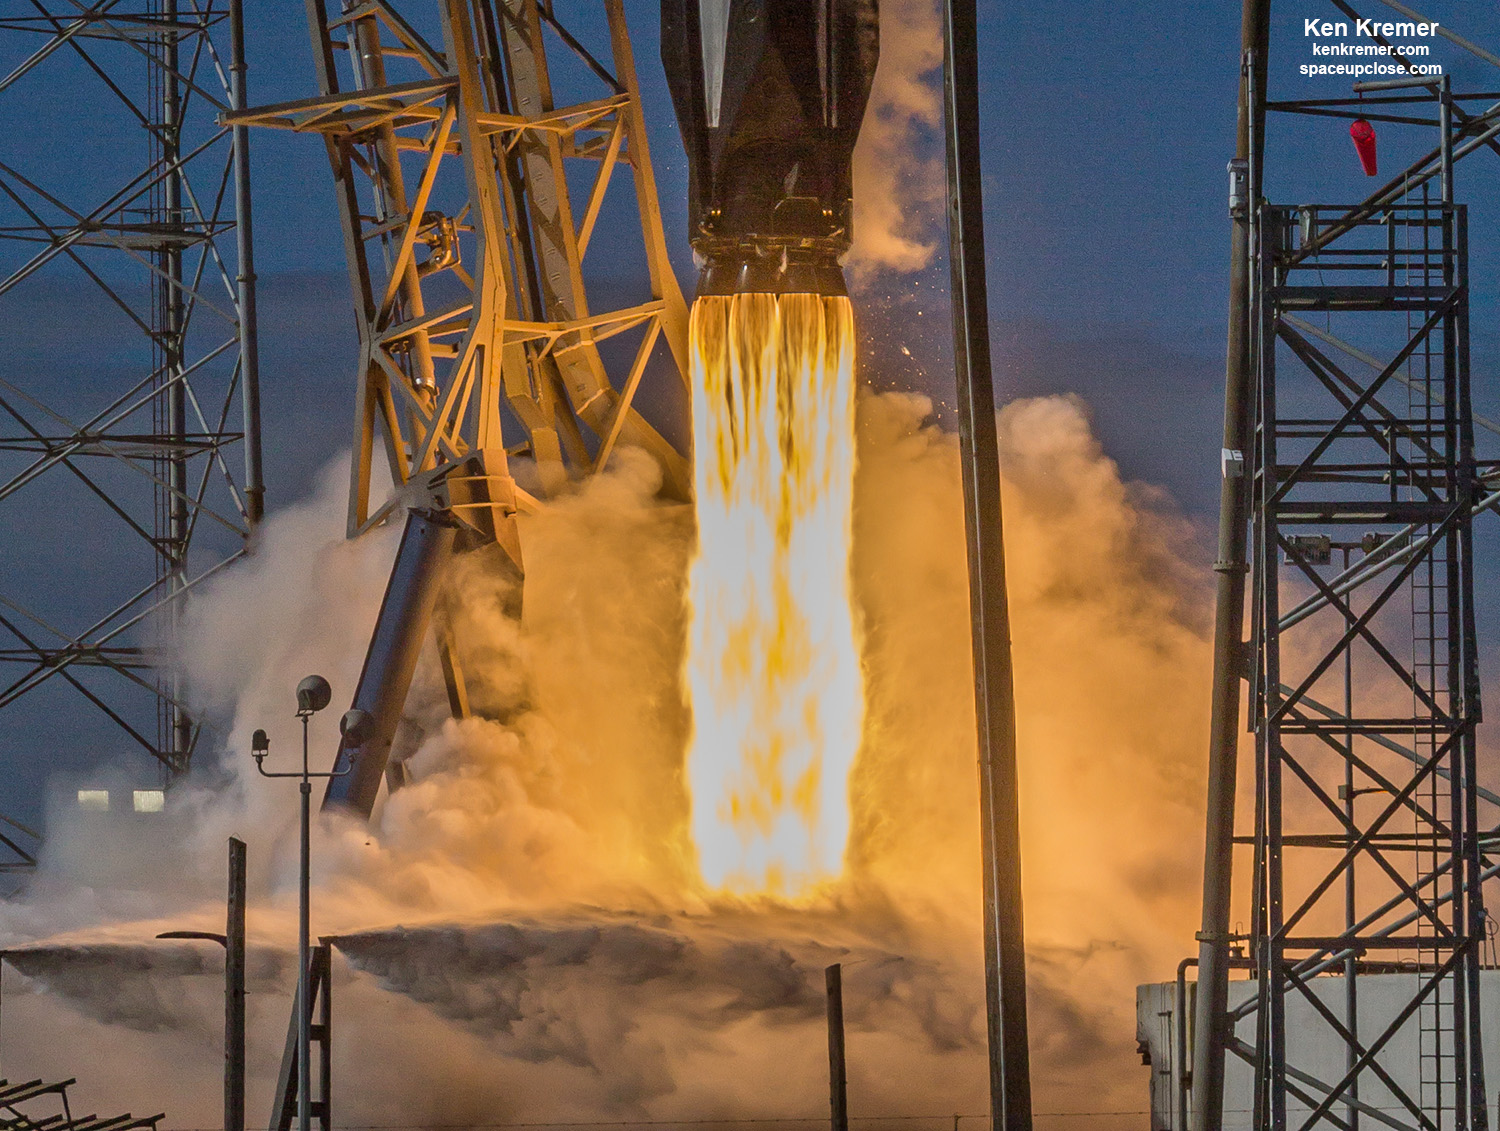 SpaceX Launches 2nd Batch of Starlink Broadband Sats with 1st Quadruply Launched Booster and 1st Reused Fairings on Veterans Day: Photos